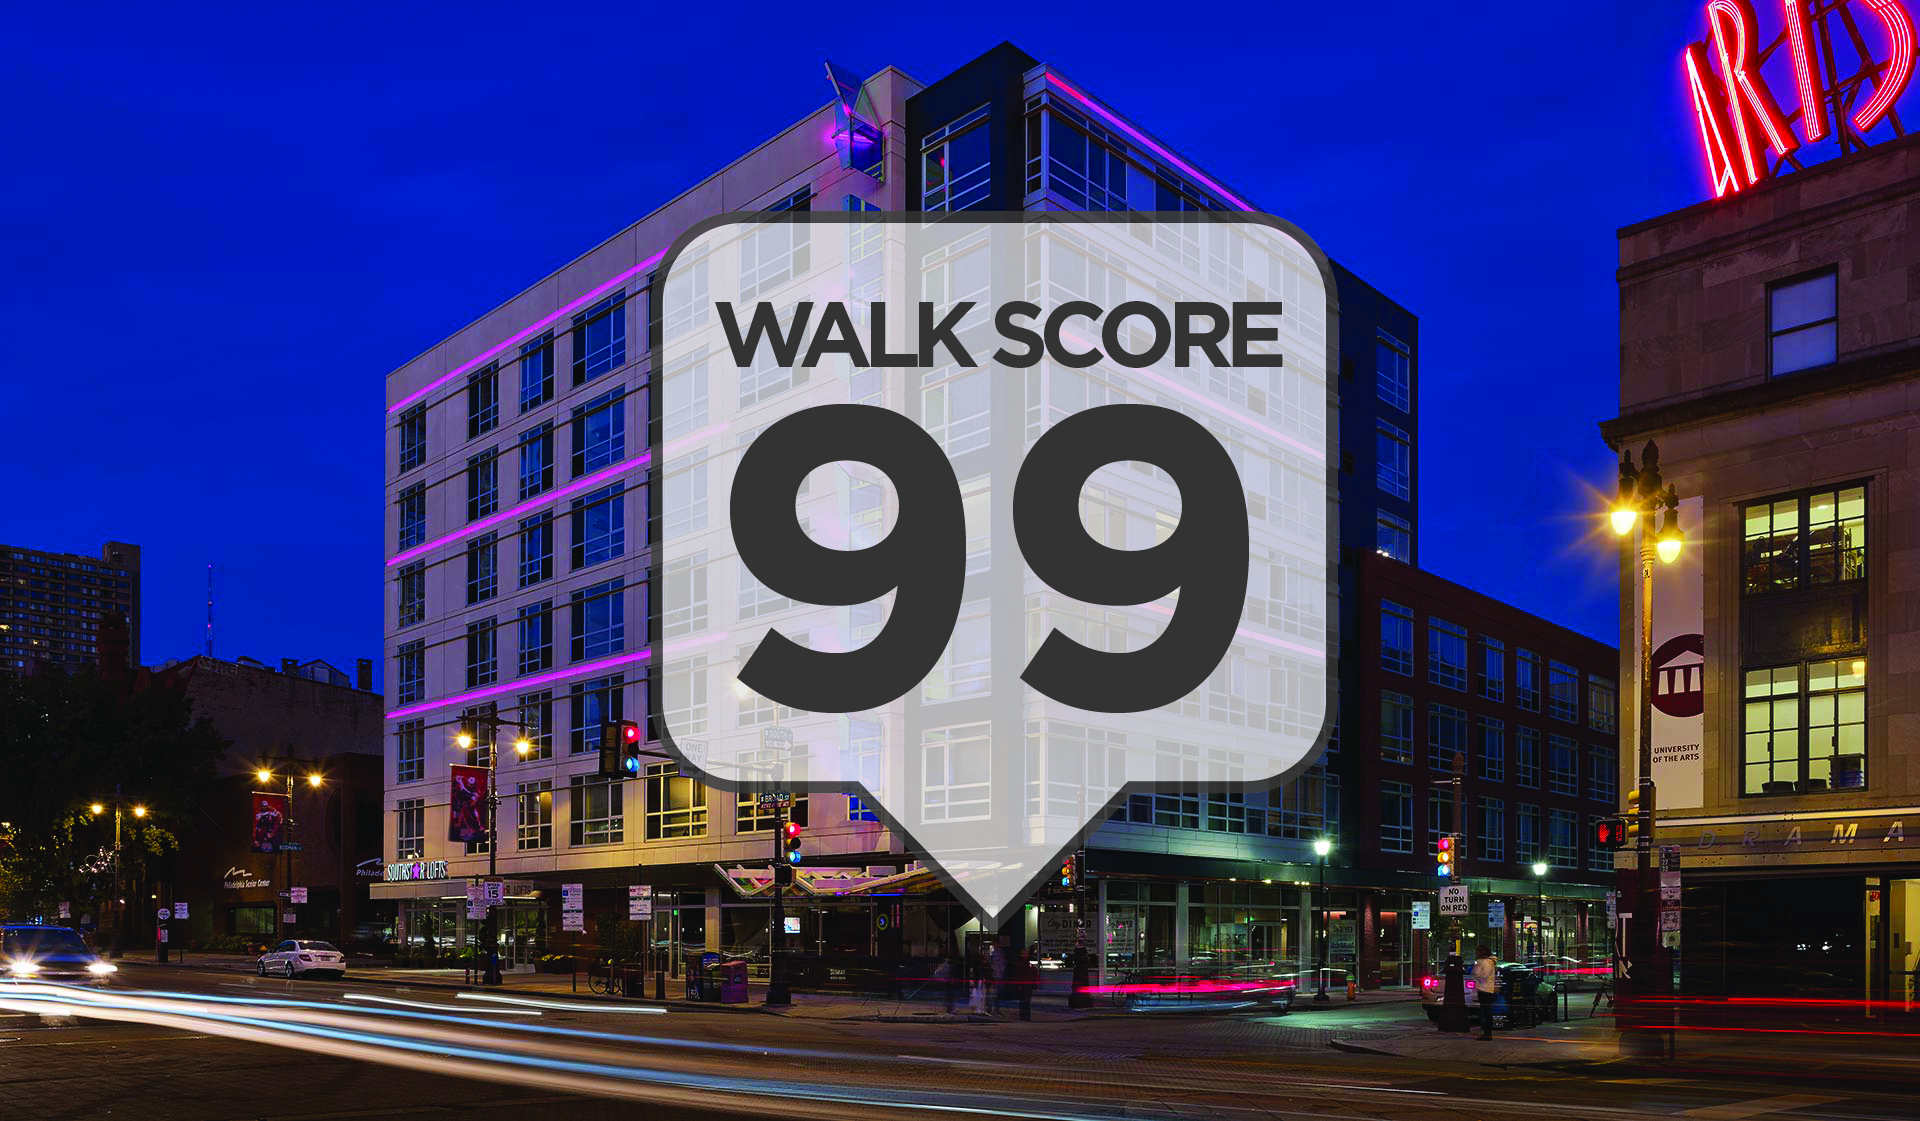 Southstar Lofts - Philadelphia Apartments - Walk Score